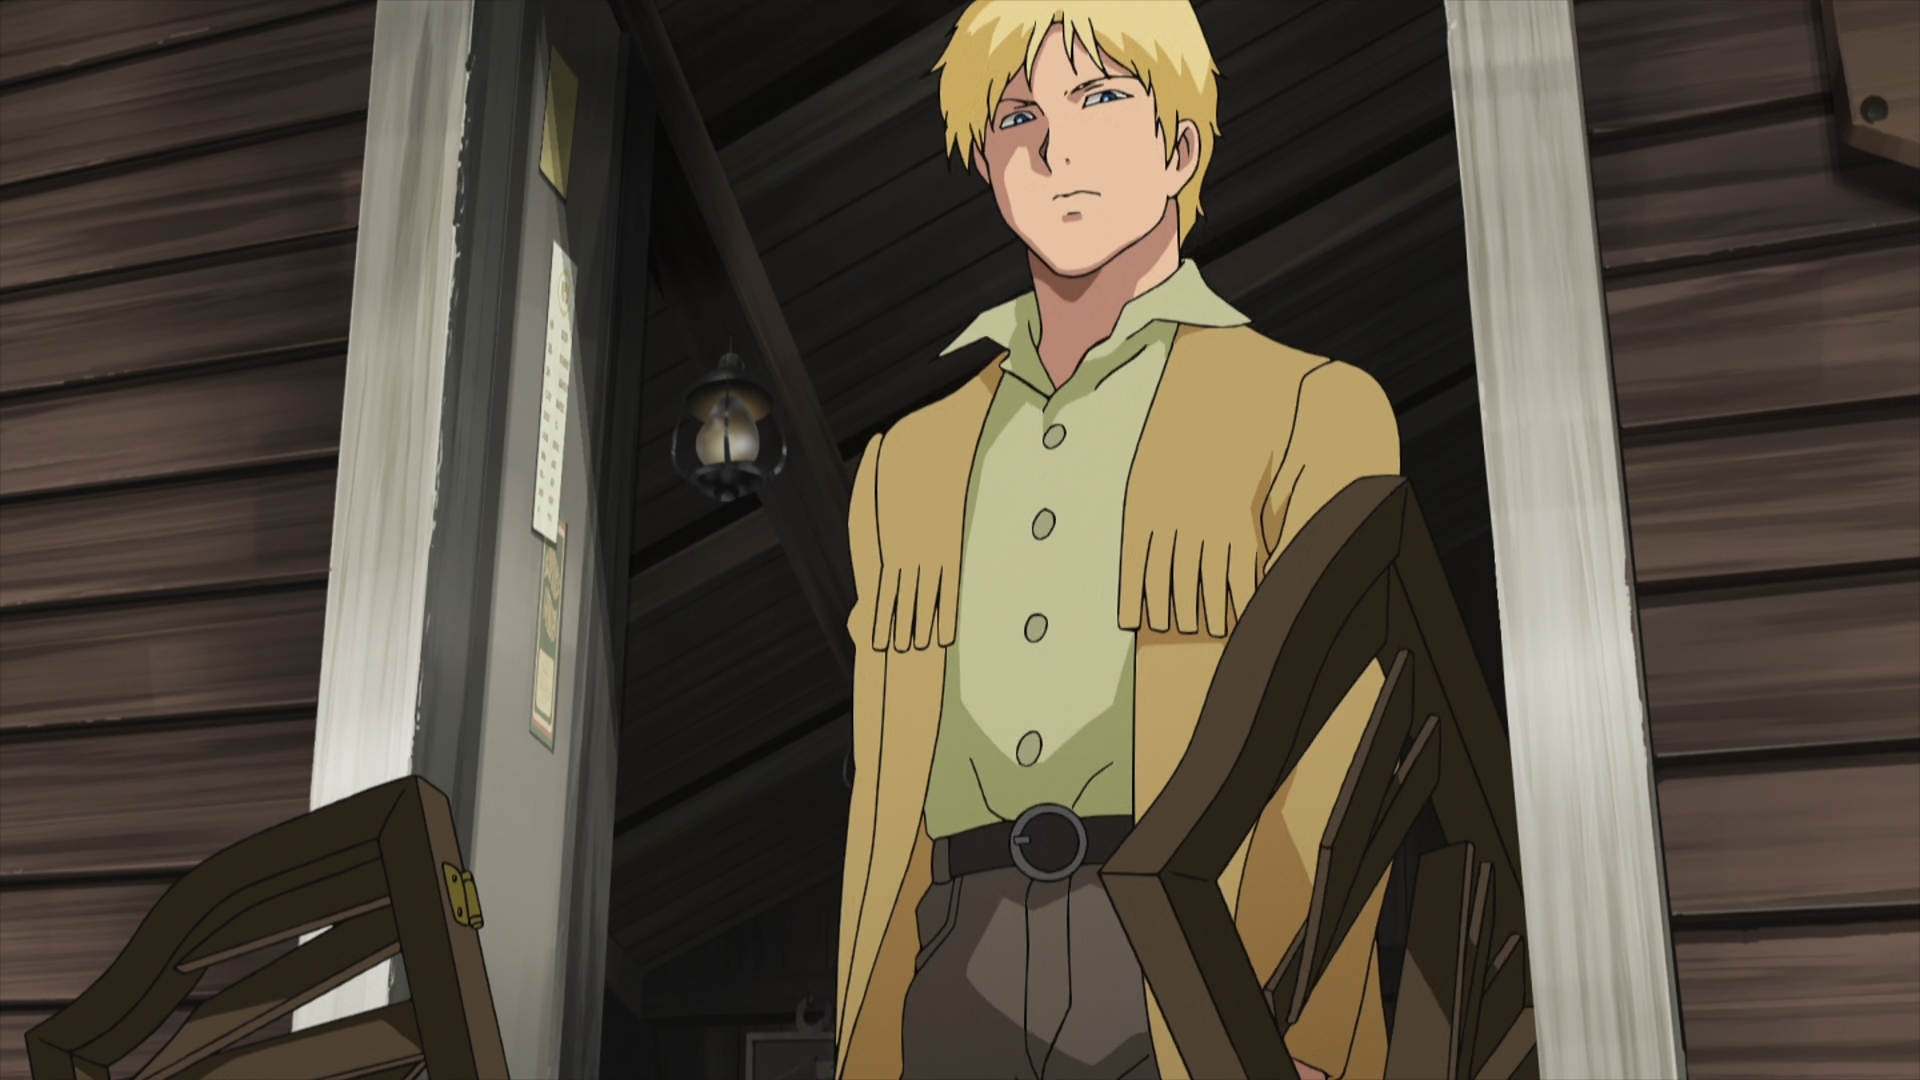 [UF+]Mobile Suit Gundam The Origin - 02 [BDrip 1080p] [C3D5F602].mkv_snapshot_48.21_[2015.12.18_13.31.03]